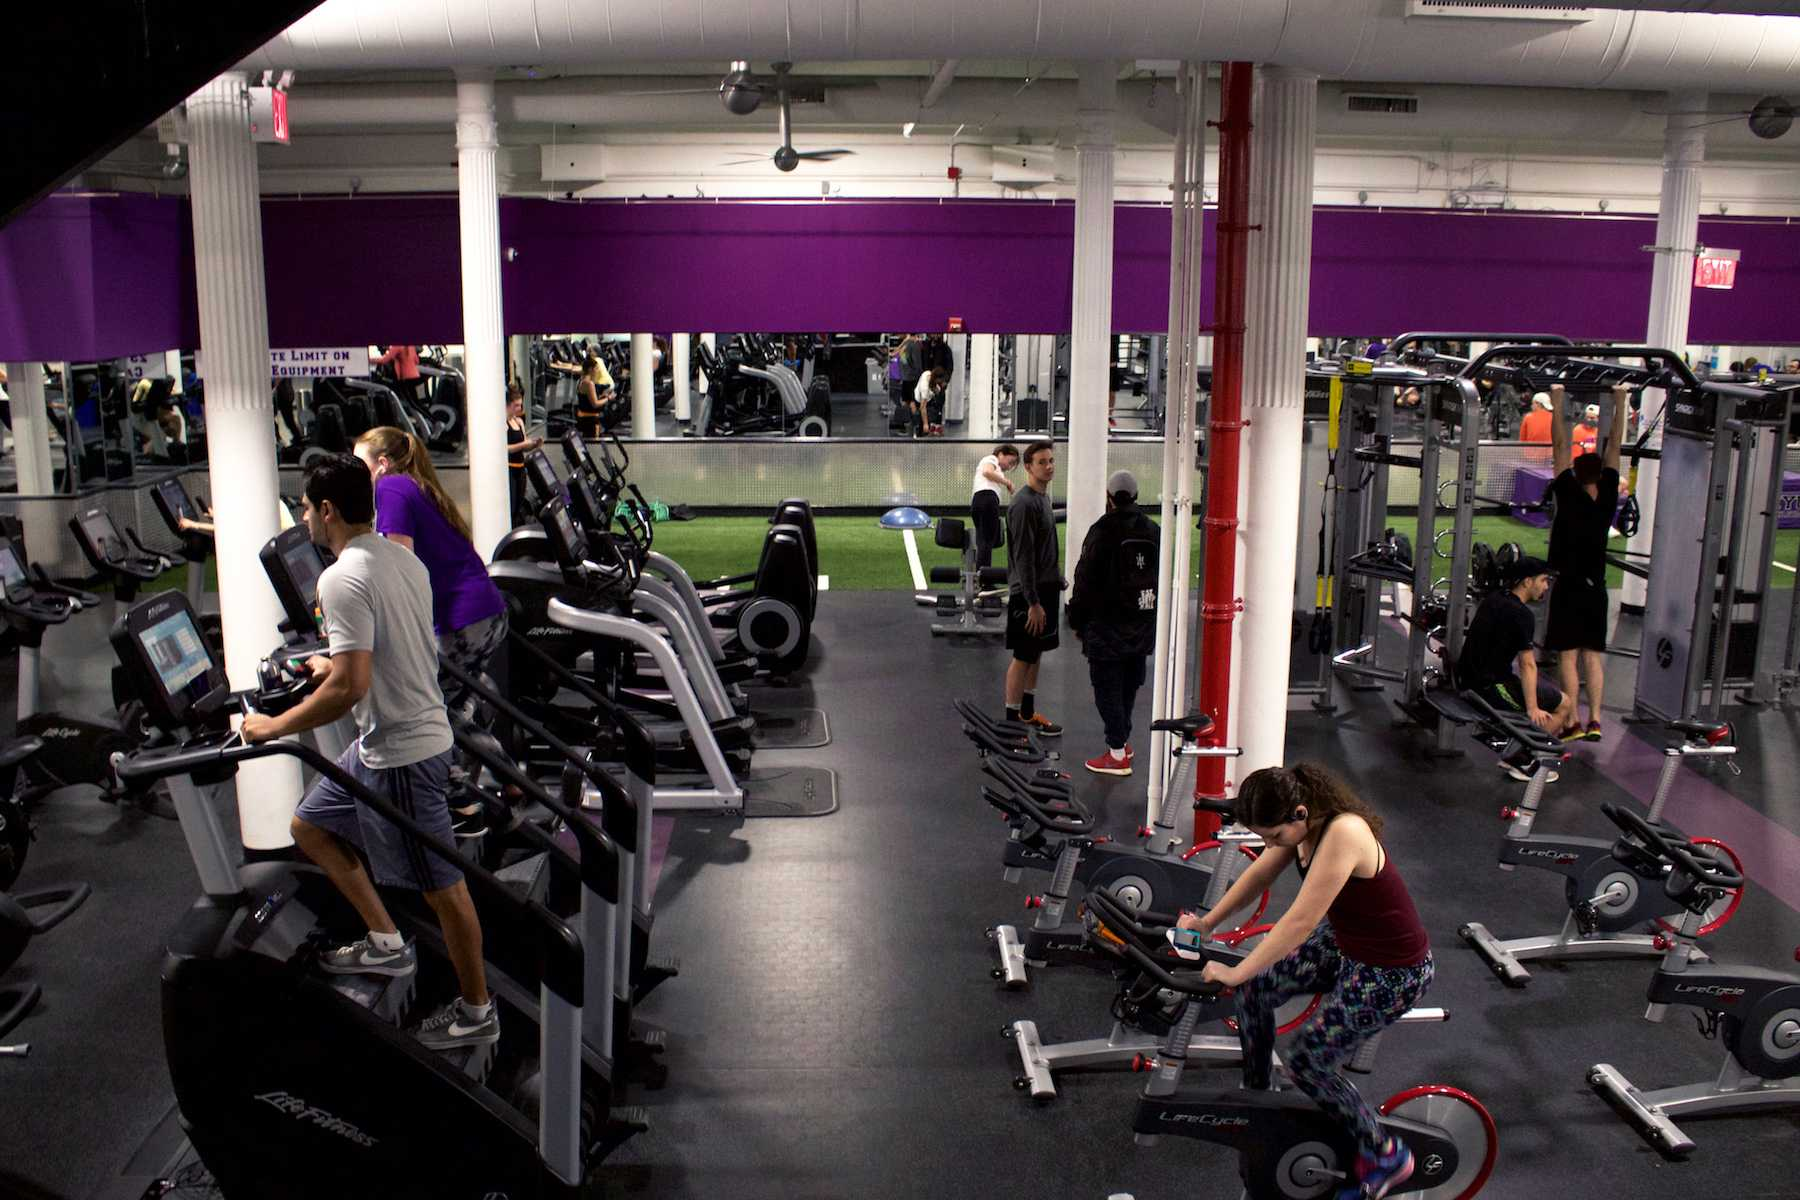 NYU 404 Fitness, a gym for students, is located on Lafayette Street between East 4th Street and Astor Place. As a replacement of the Jerome S. Coles gym on Mercer Street that closed last year, 404  opened on Feb. 22, 2016.